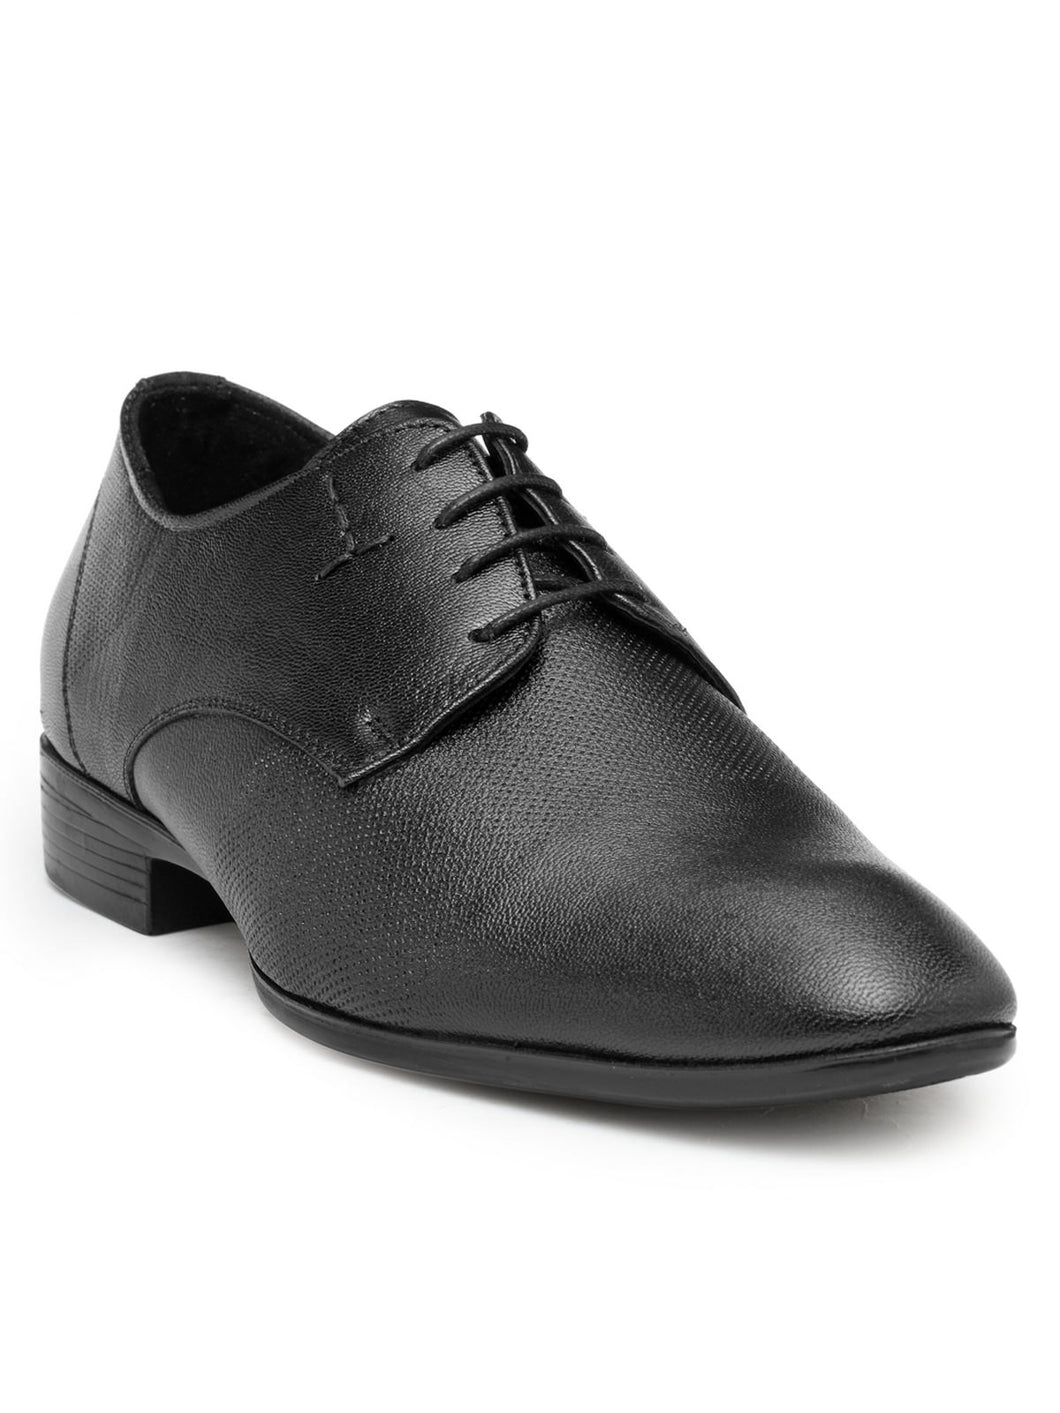 Teakwood Leather Black Formal Shoes